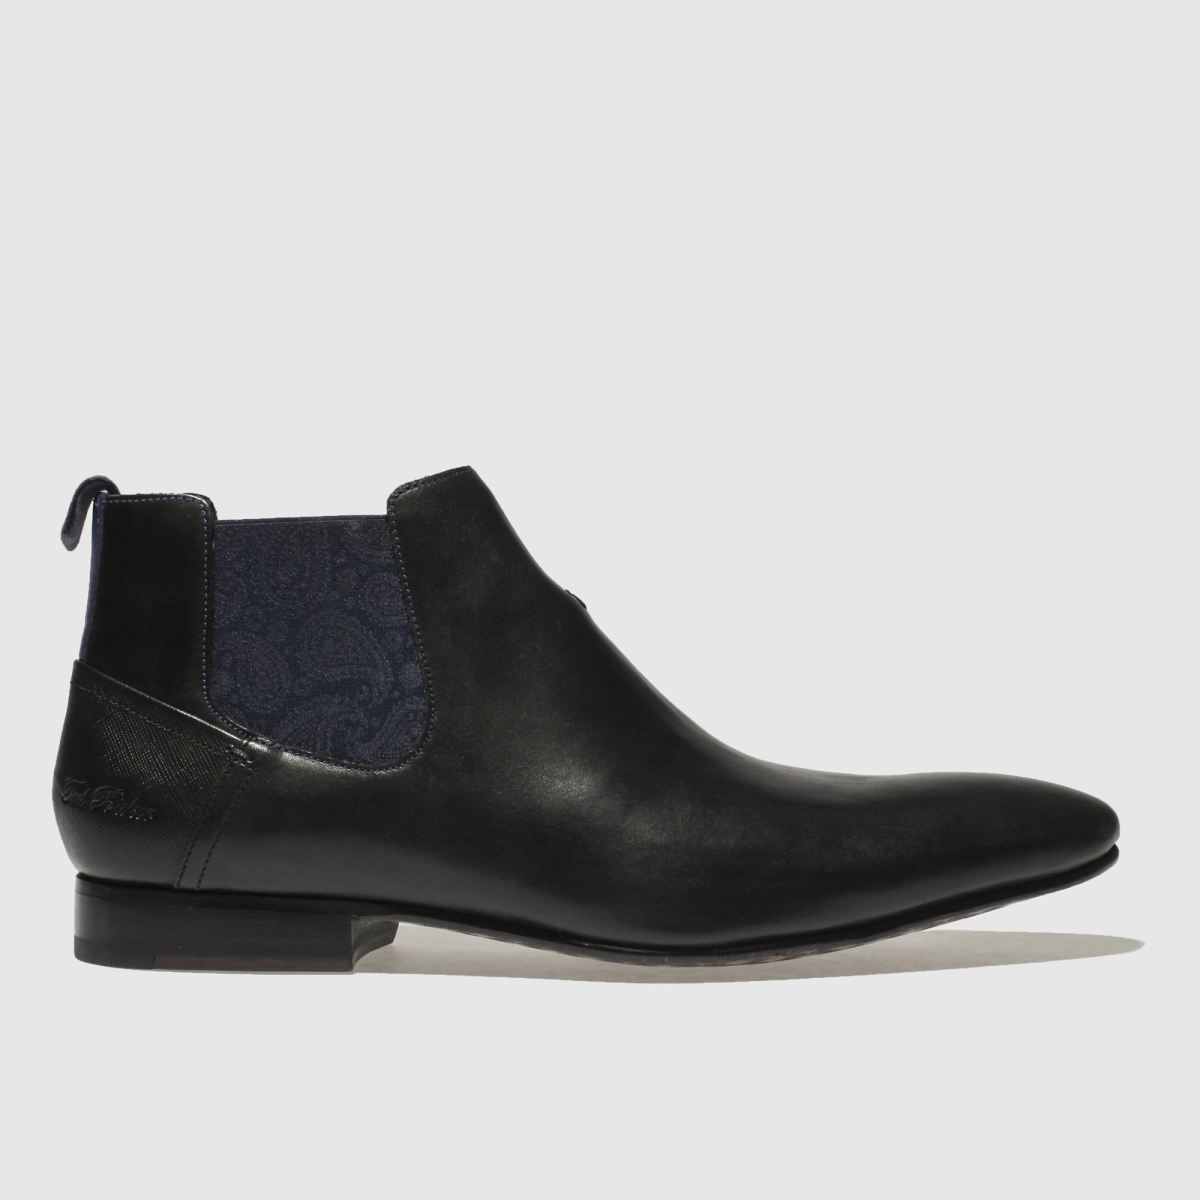 Ted Baker Black Lowpez Boots